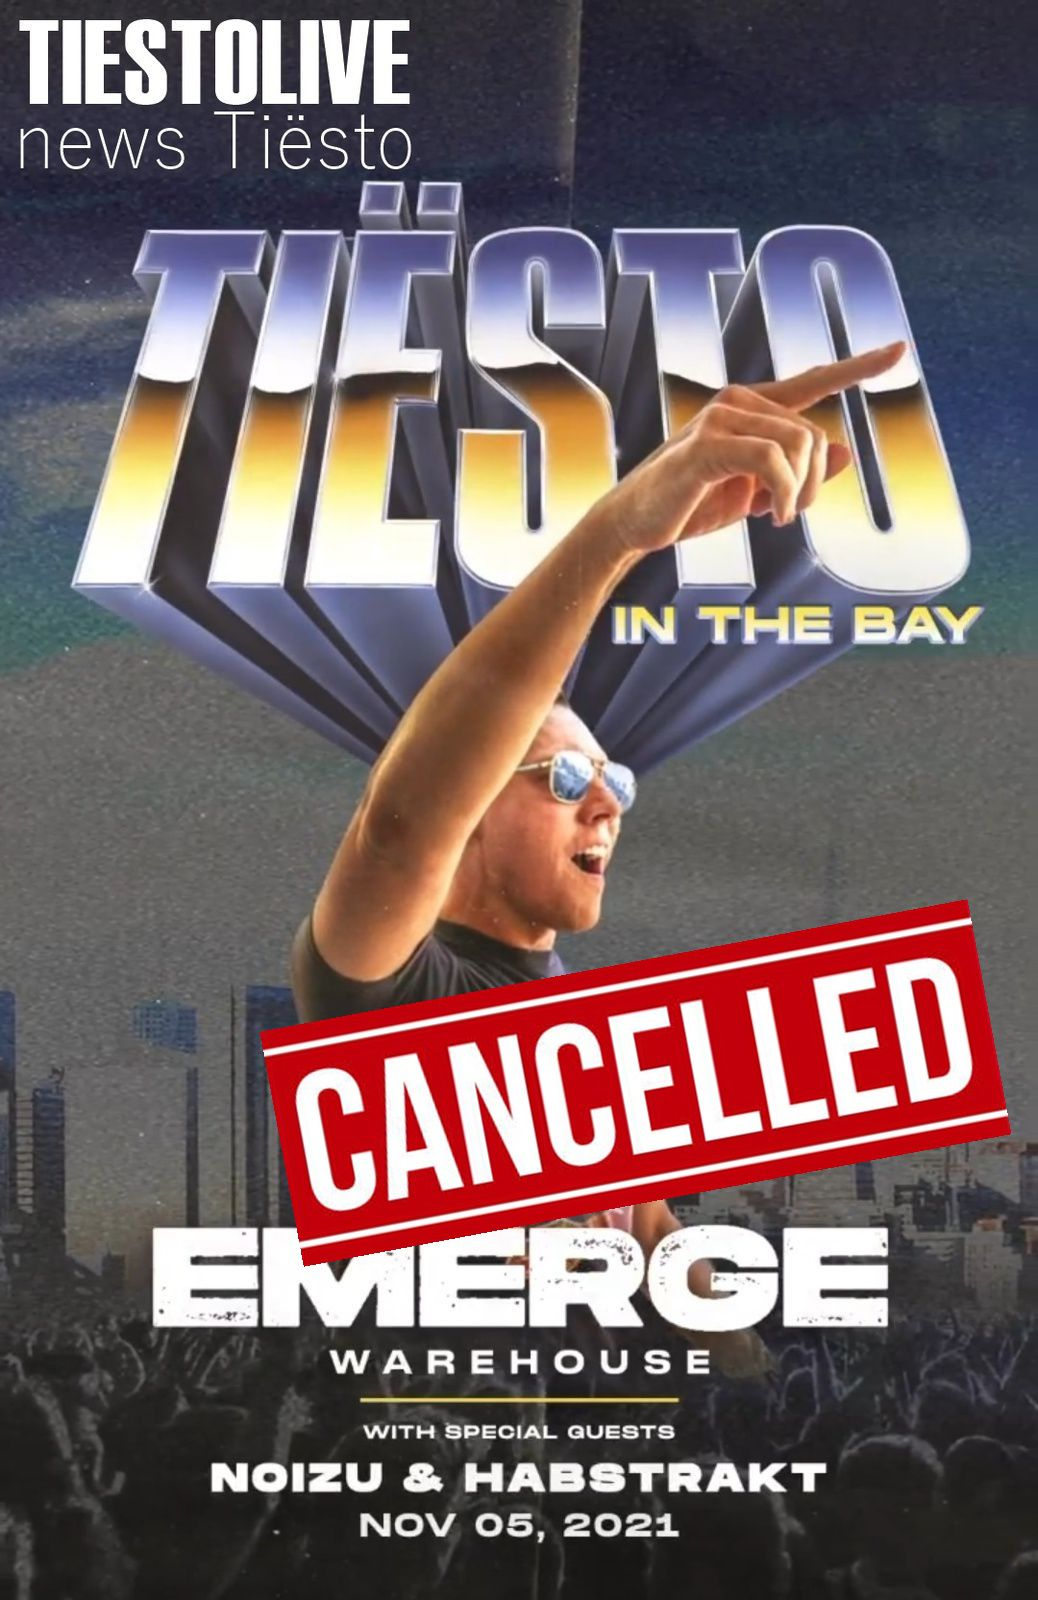 Tiësto date CANCELLED   Emerge Warehouse   Oakland, CA - november 05, 2021